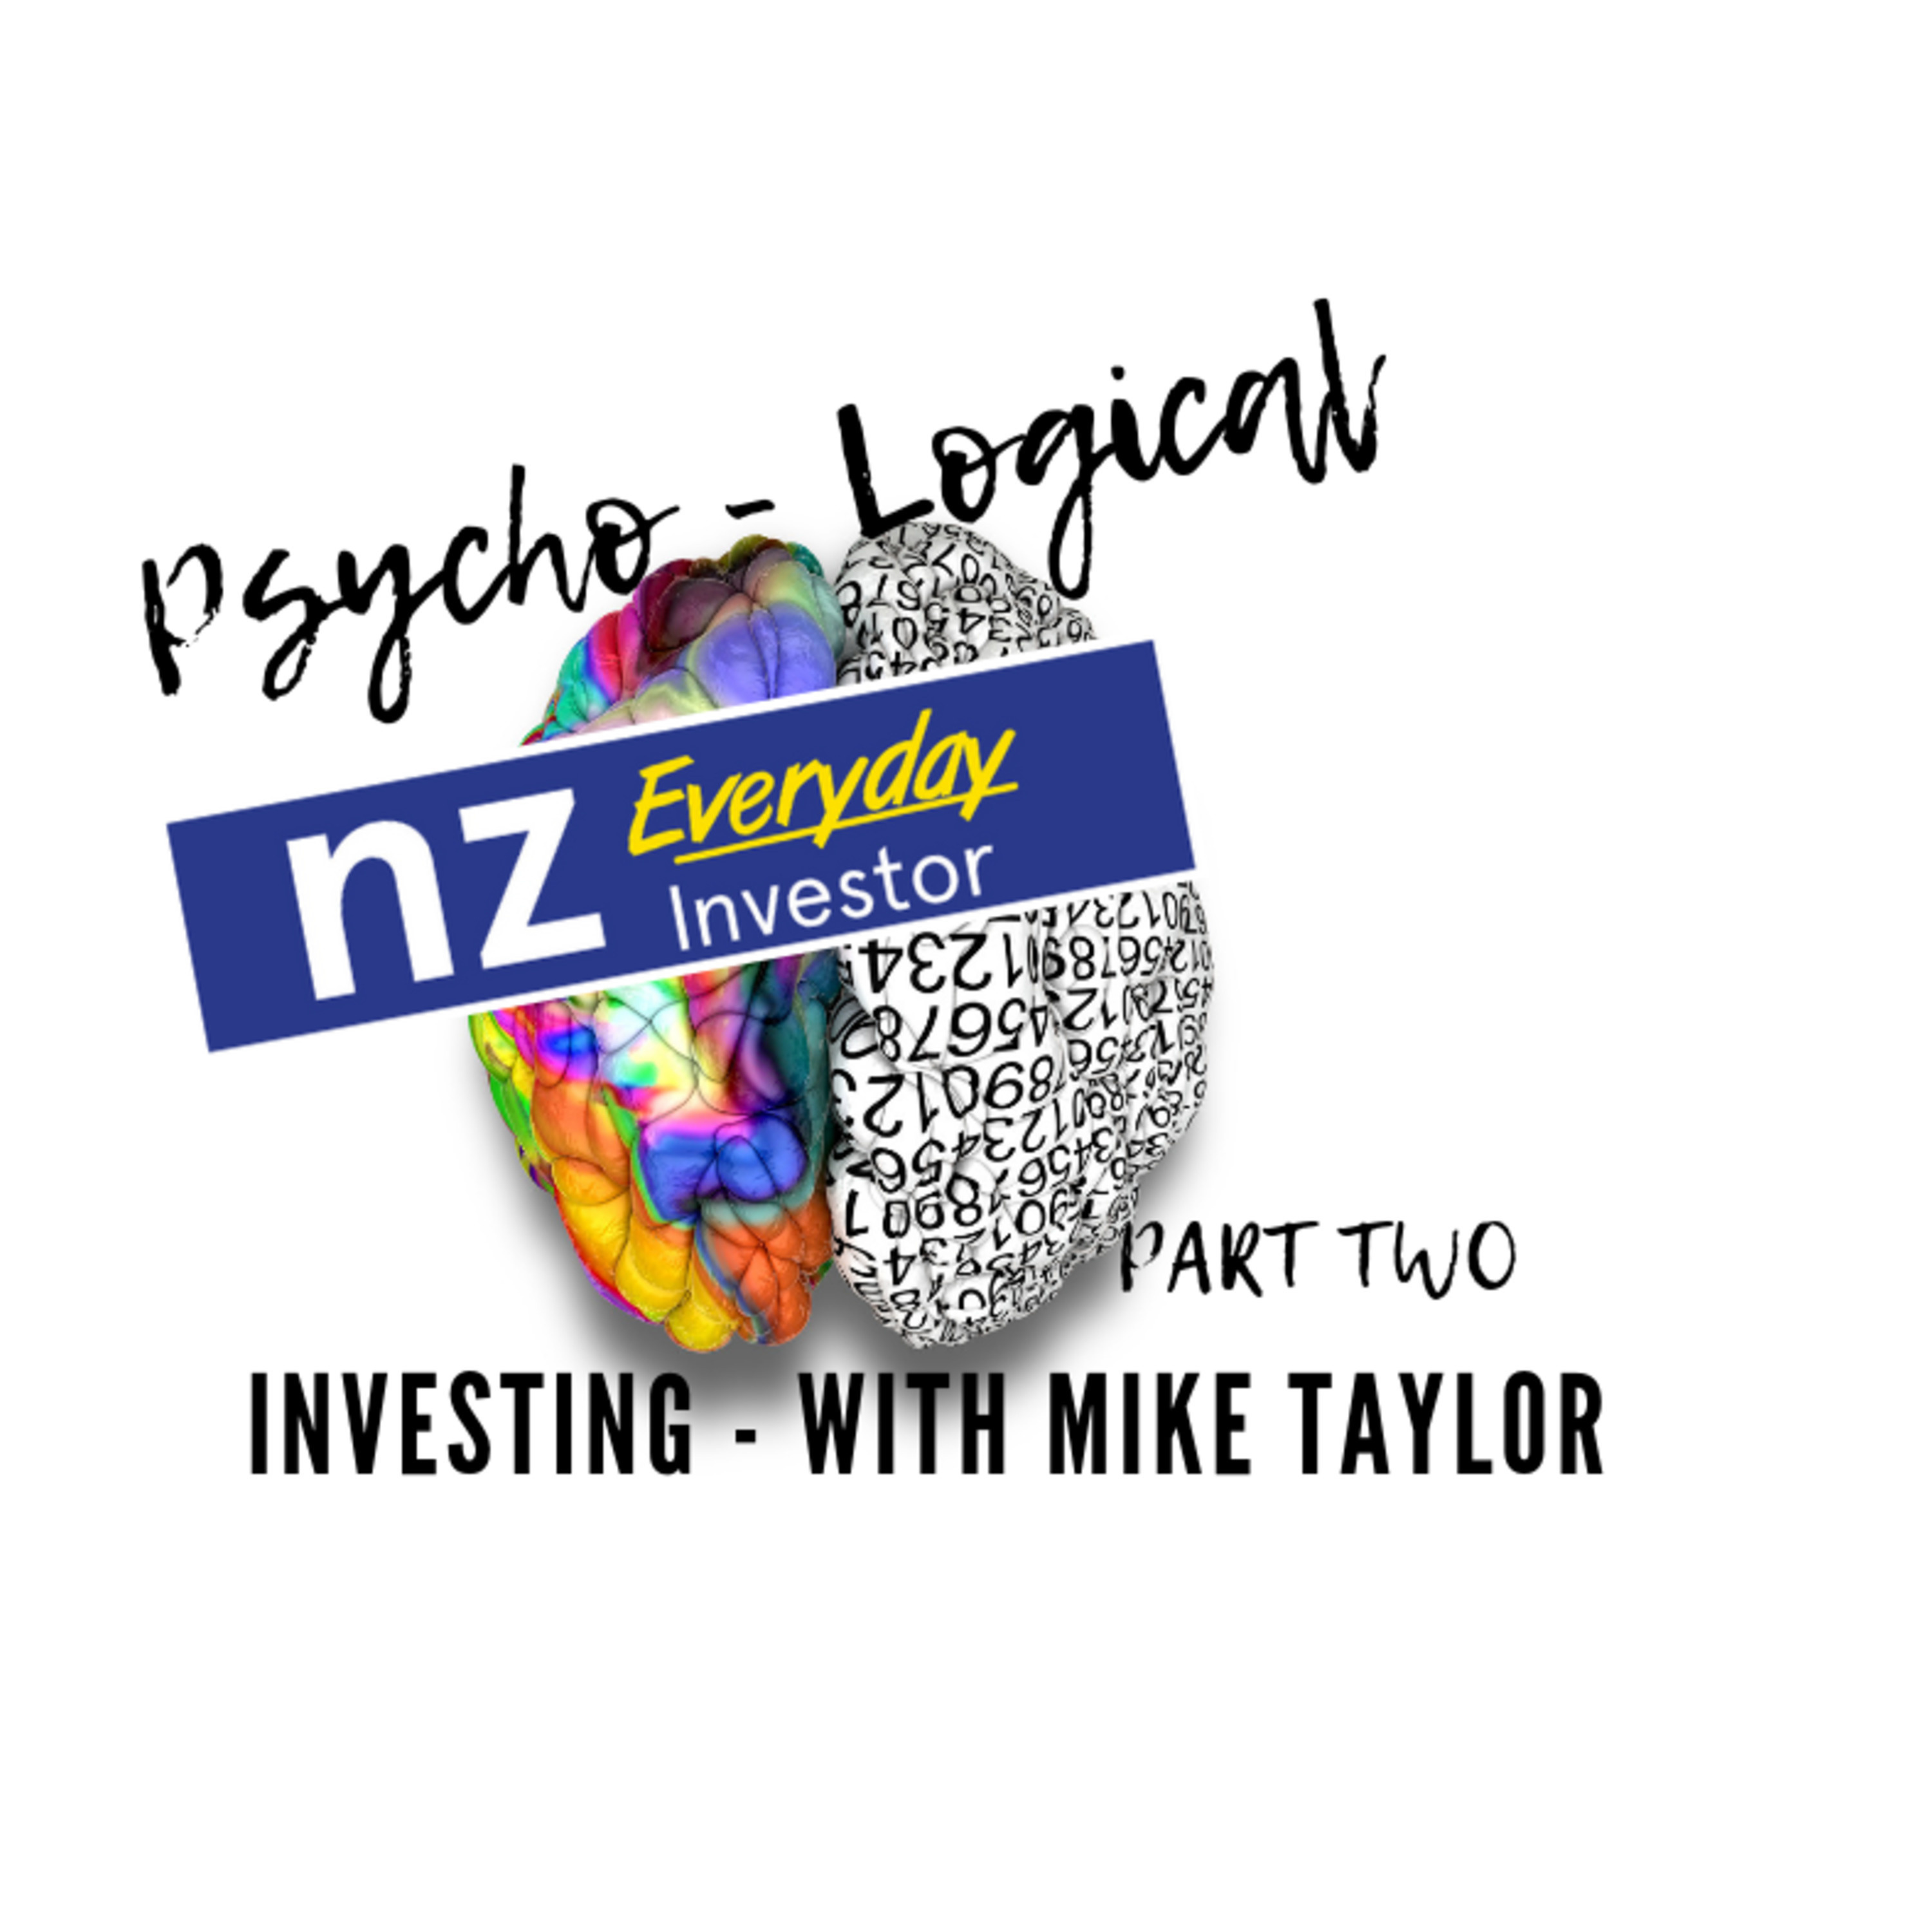 Psycho / Logical Investing: Mike Taylor - Part Two